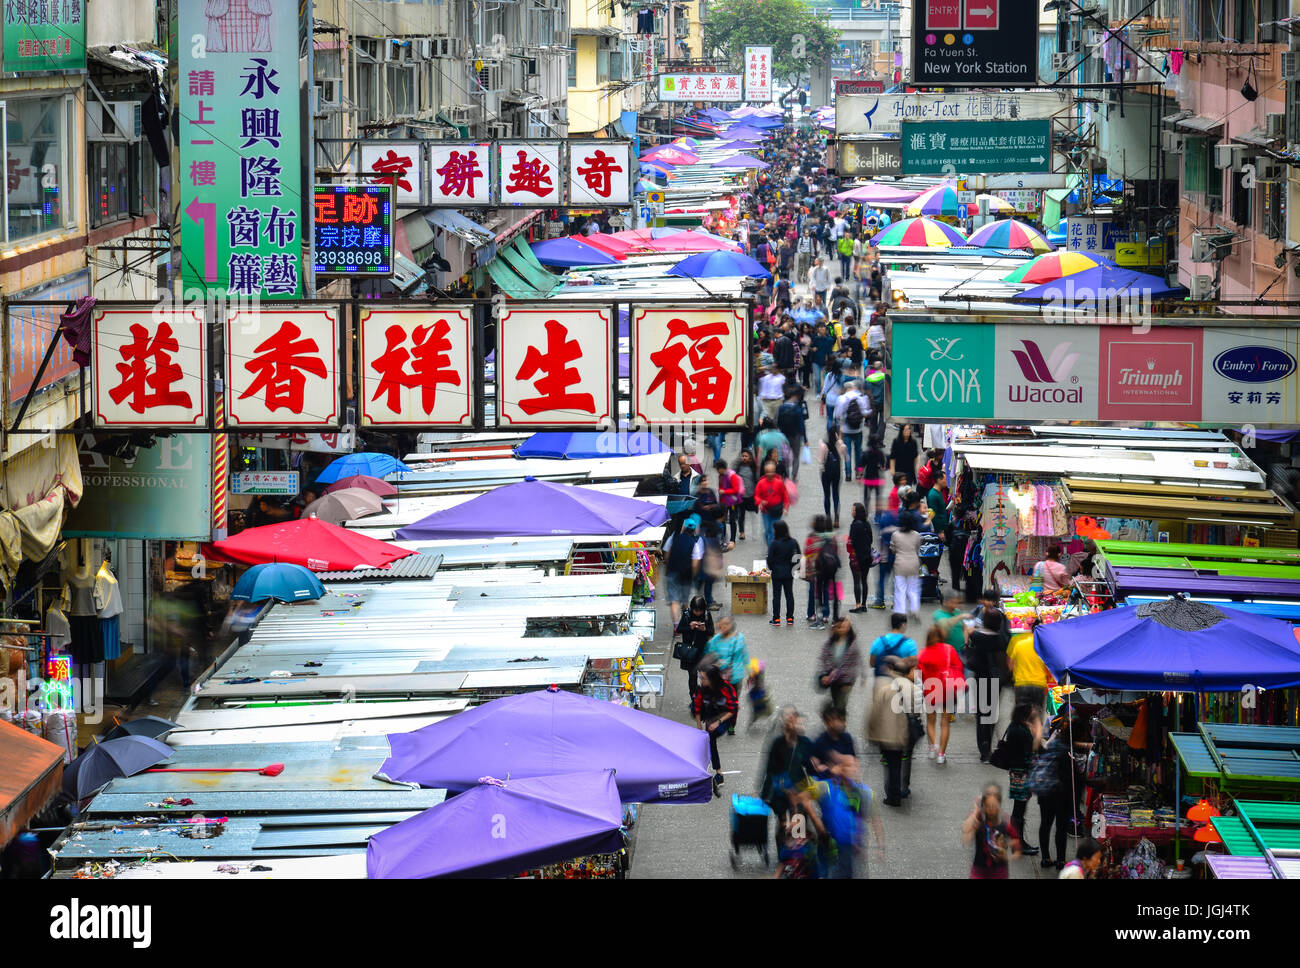 Hong Kong - Mar 29, 2017. People at the Fa Yuen street market in Hong Kong. The area is popular with tourists and - Stock Image